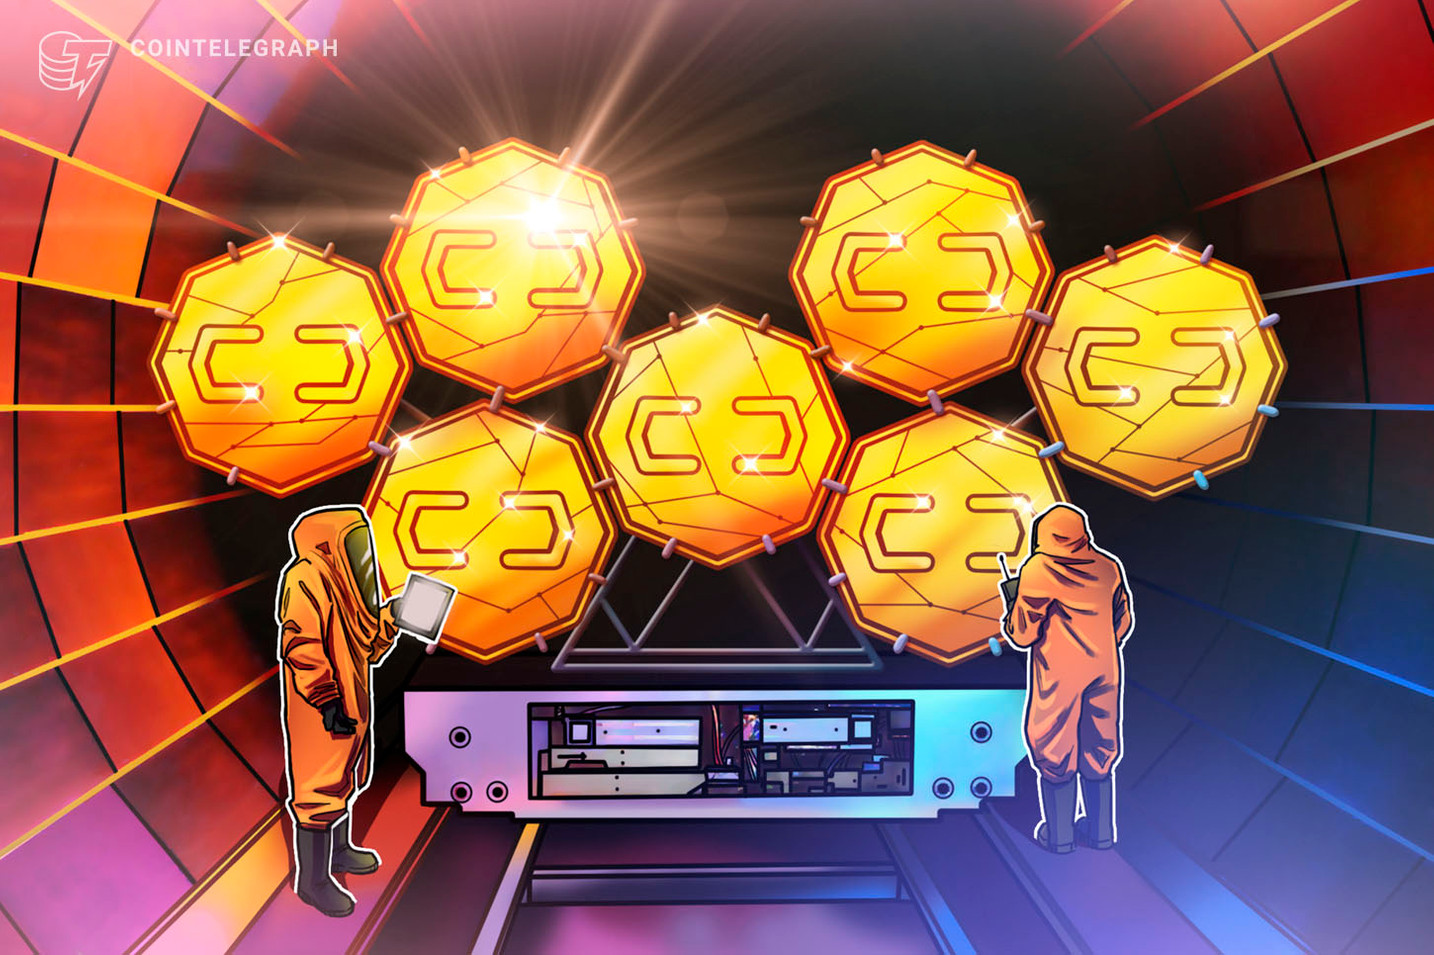 Institutionalize crypto markets now: There must be compliance controls